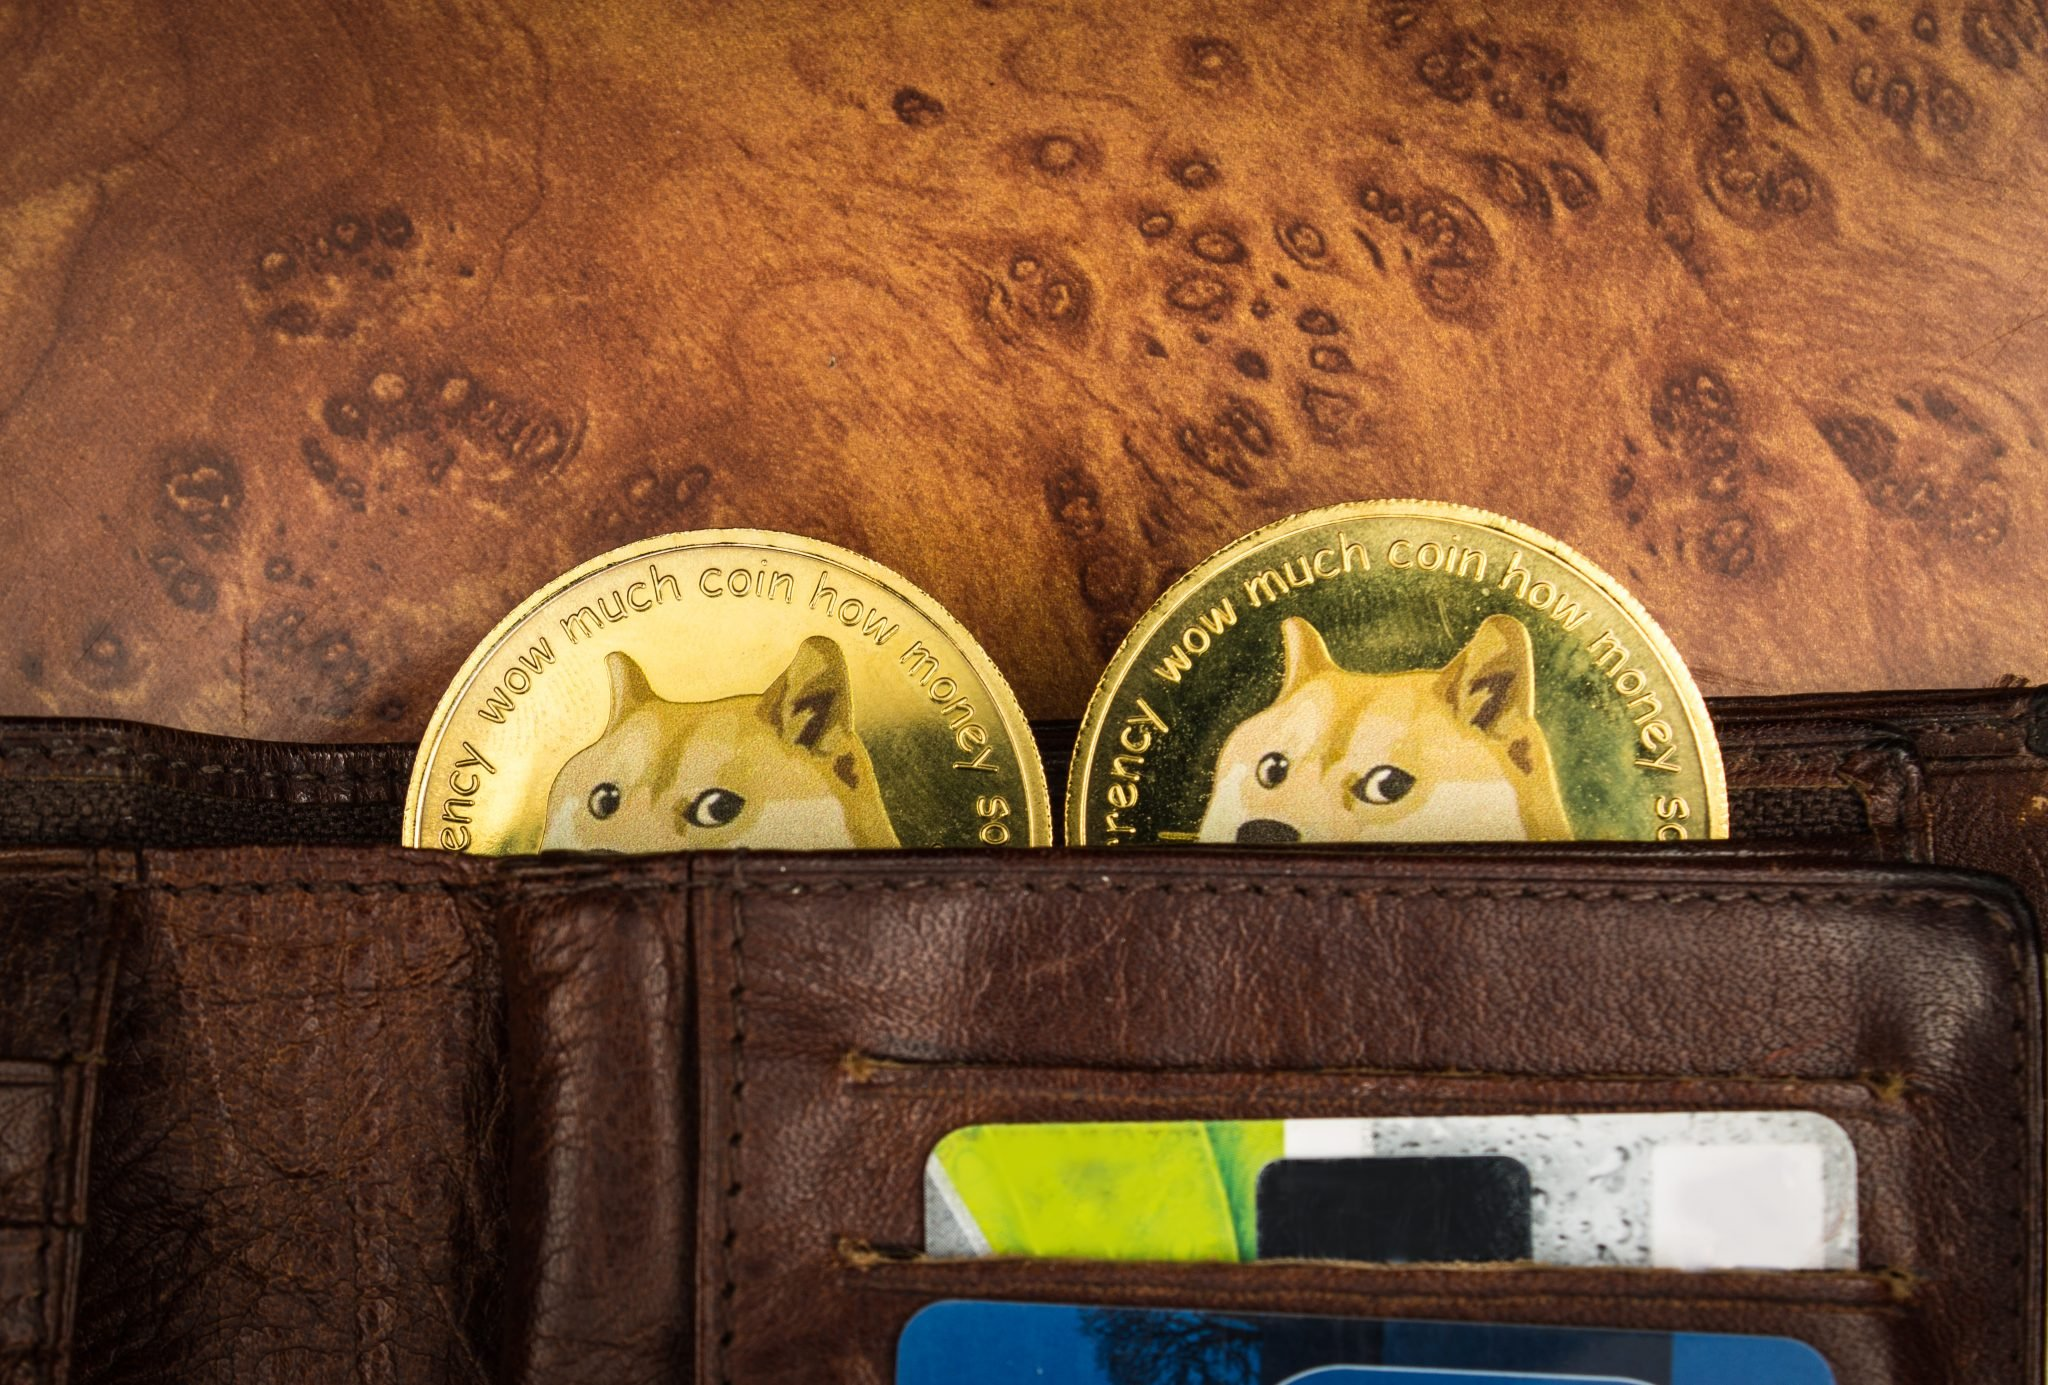 Dogecoins in a wallet on a table